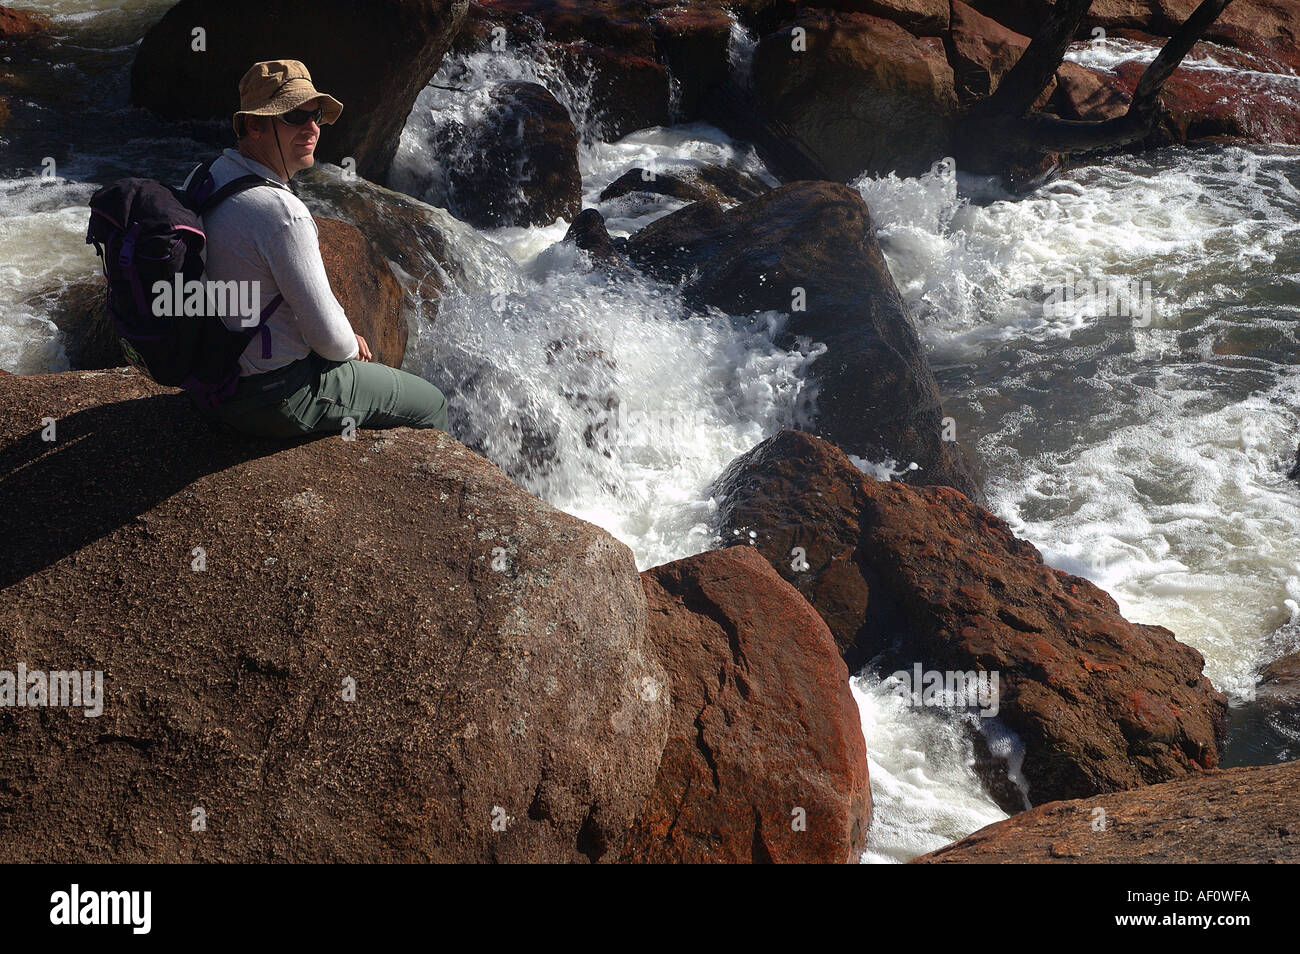 Bushwalker resting on a boulder in Jane Brook John Forrest National Park, Darling Ranges, Perth, Western Australia - Stock Image